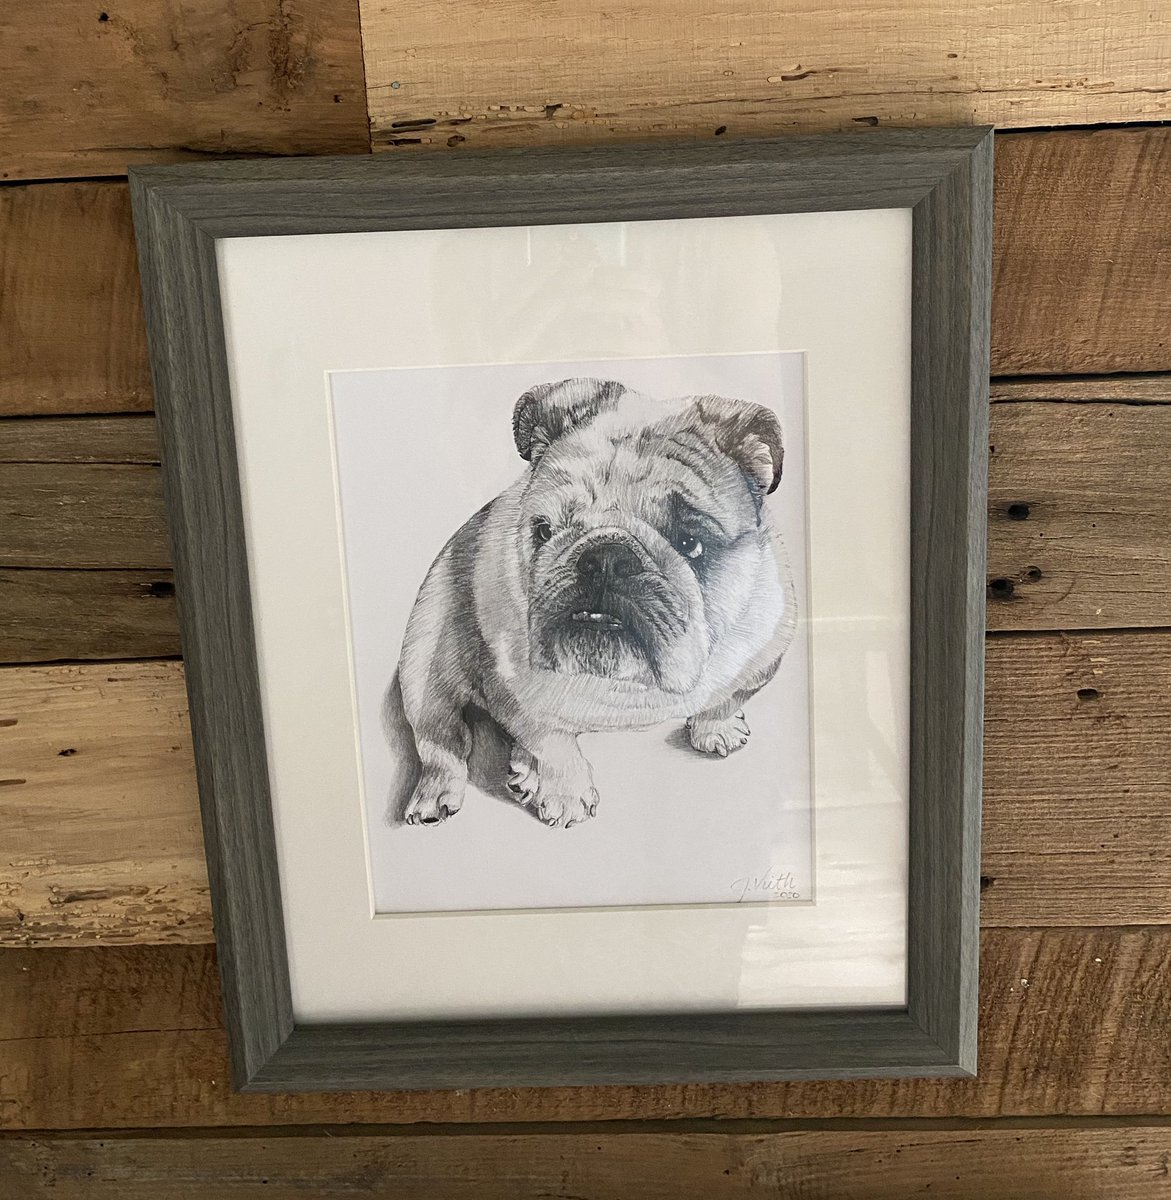 I sit so still, I am officially very sketch-able - thanks to the amazing artist Julie Bibb! #englishbulldog #artistsontwitter pic.twitter.com/vacMsCwH81